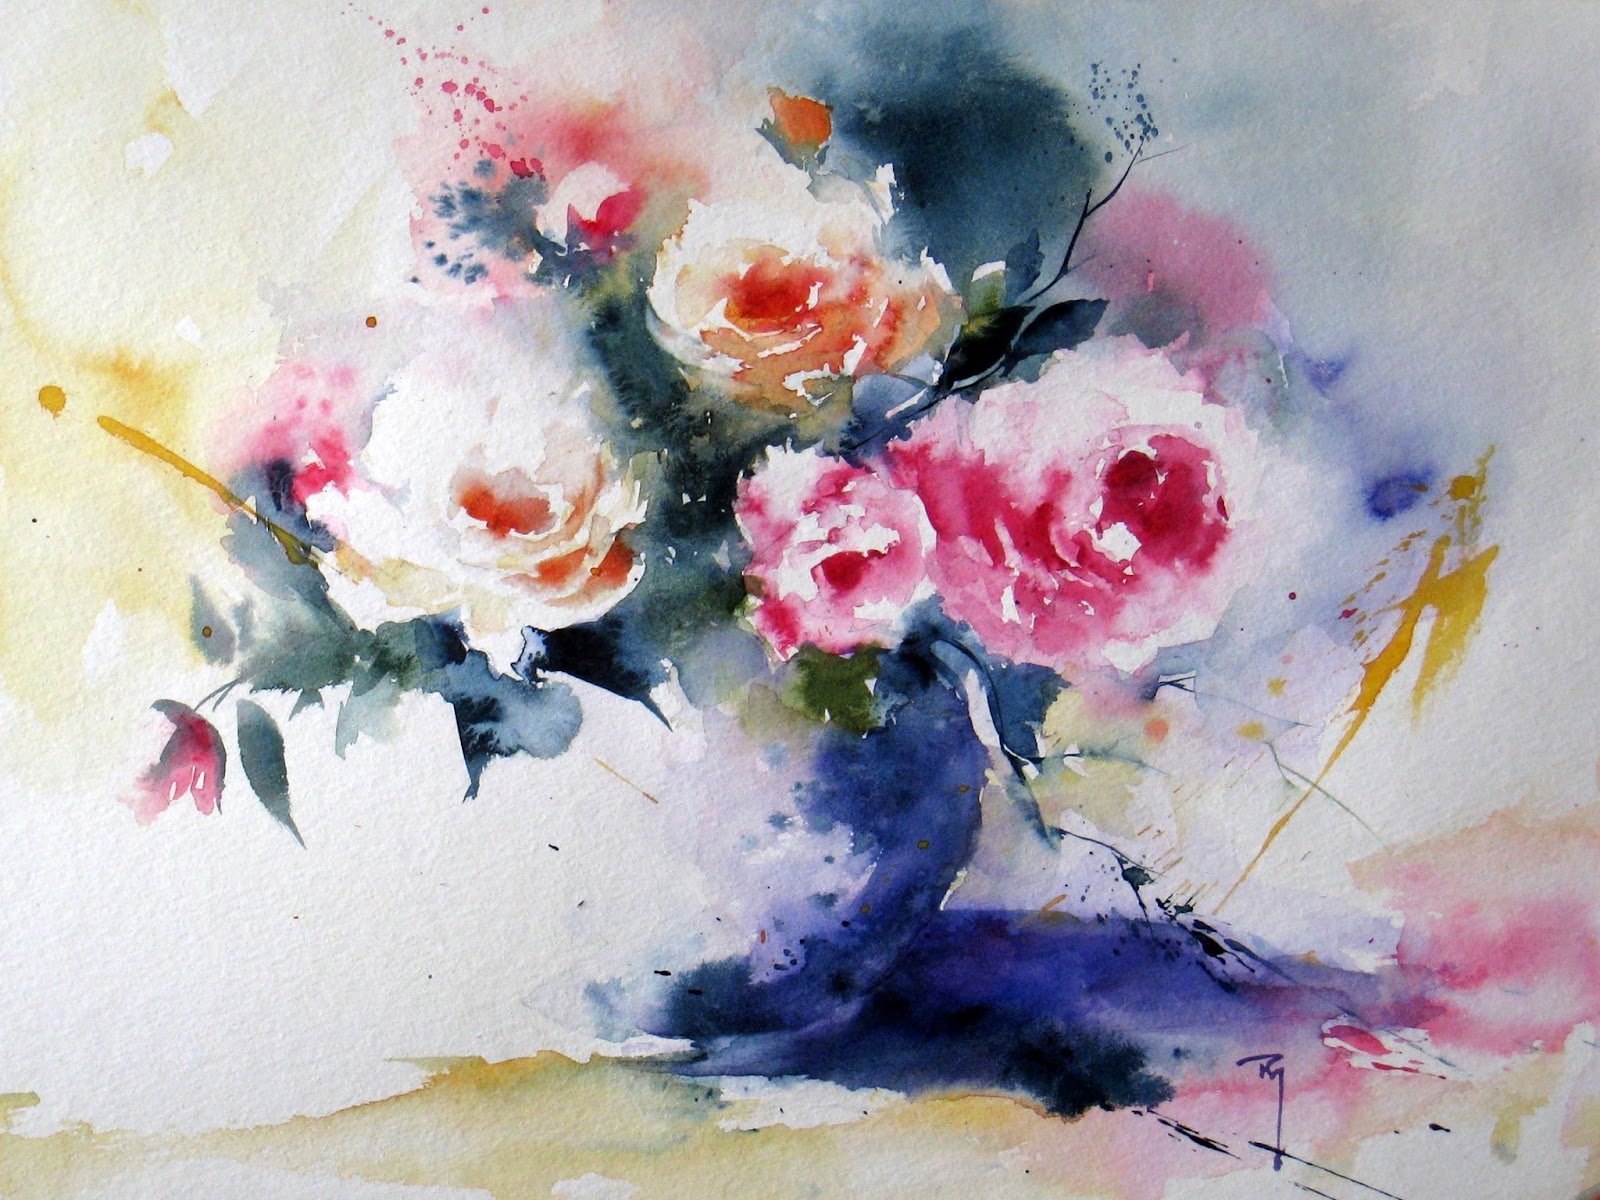 The Watercolour Log: Watercolour Paintings (21)